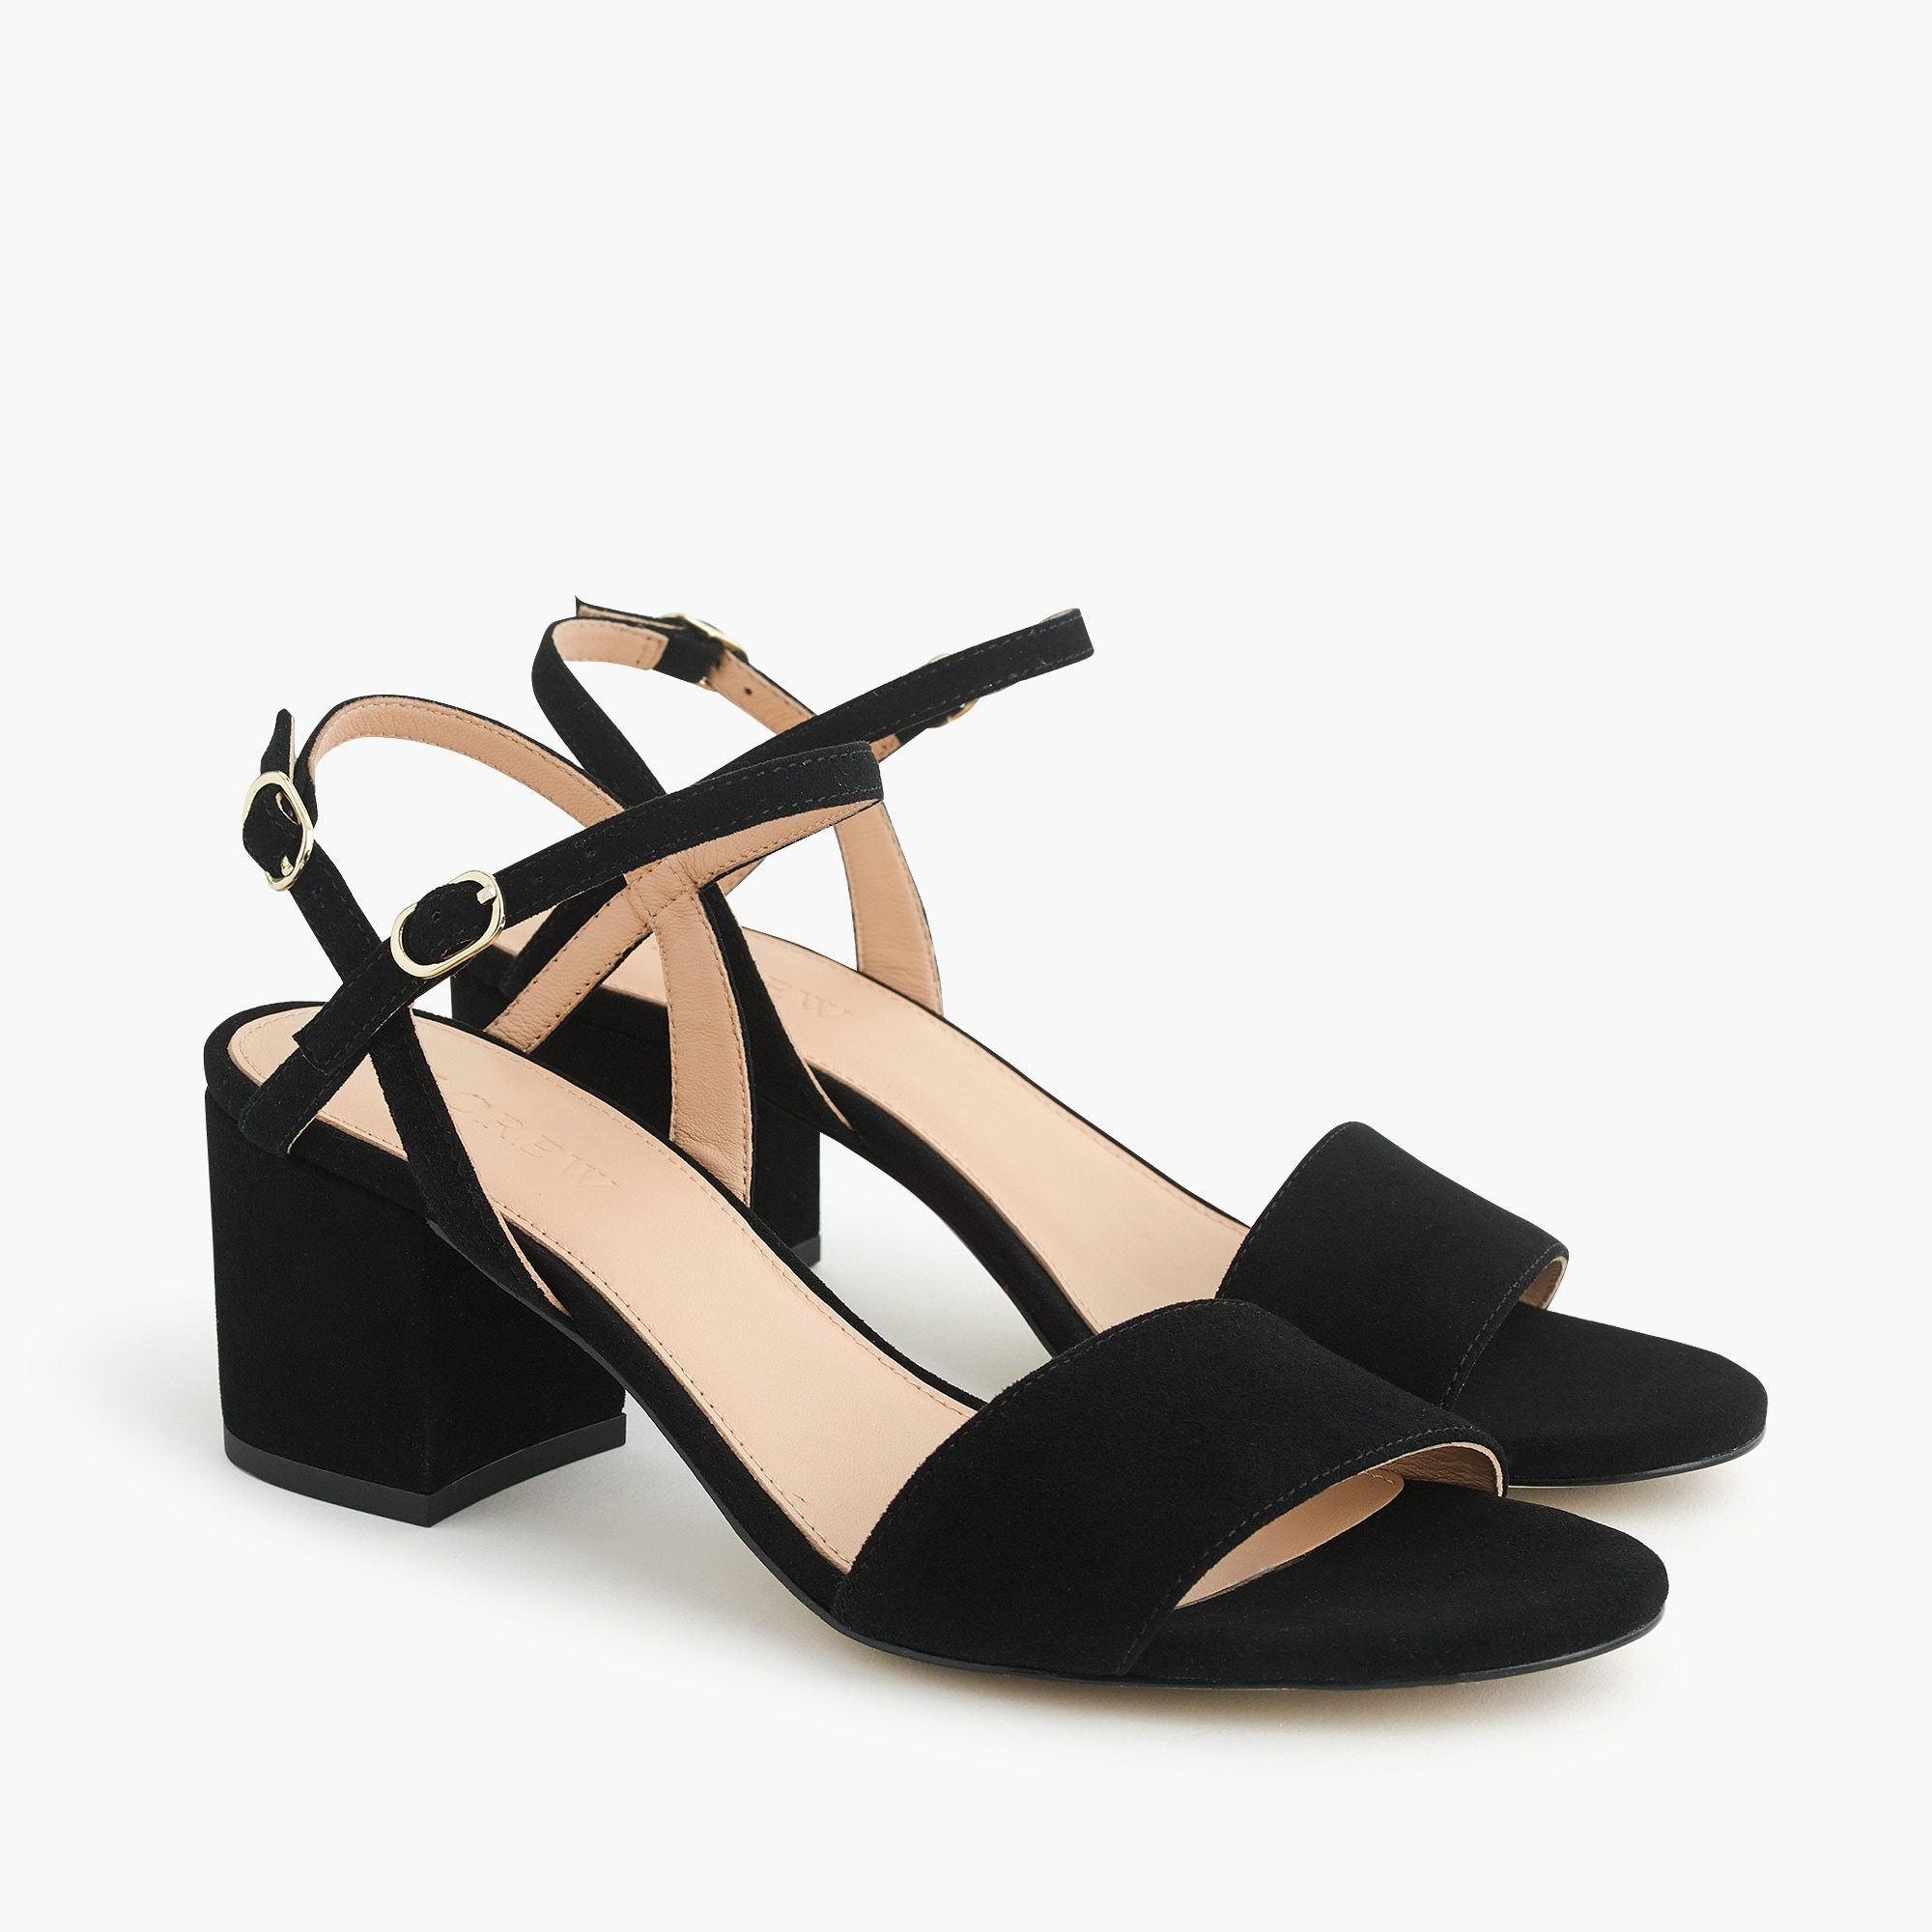 Strappy block-heel sandals (60mm) in suede women new arrivals c